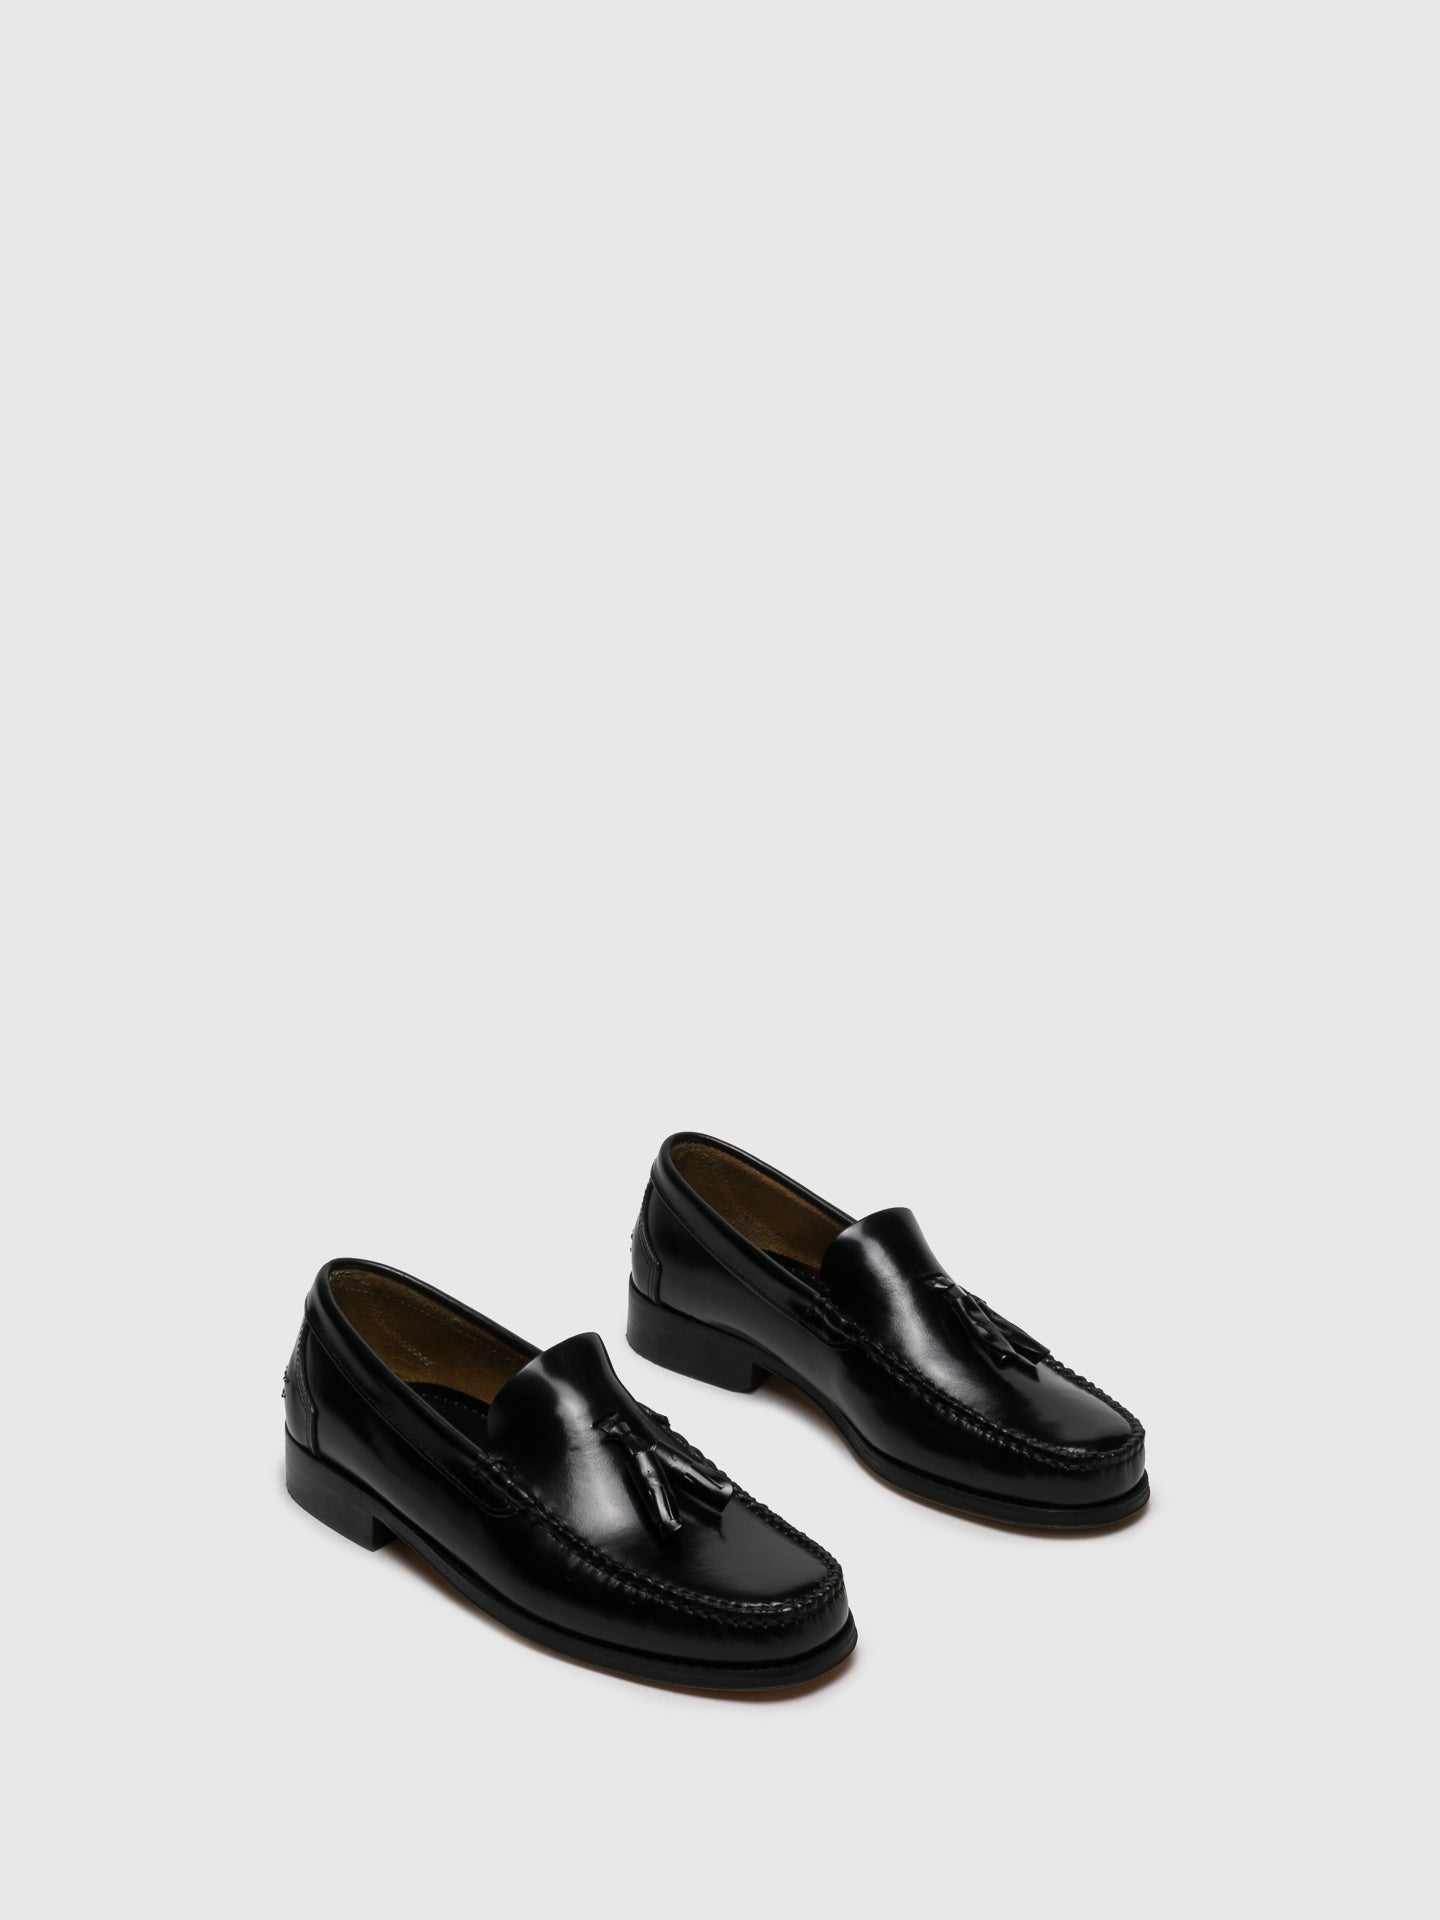 Sotoalto Gloss Black Loafers Shoes